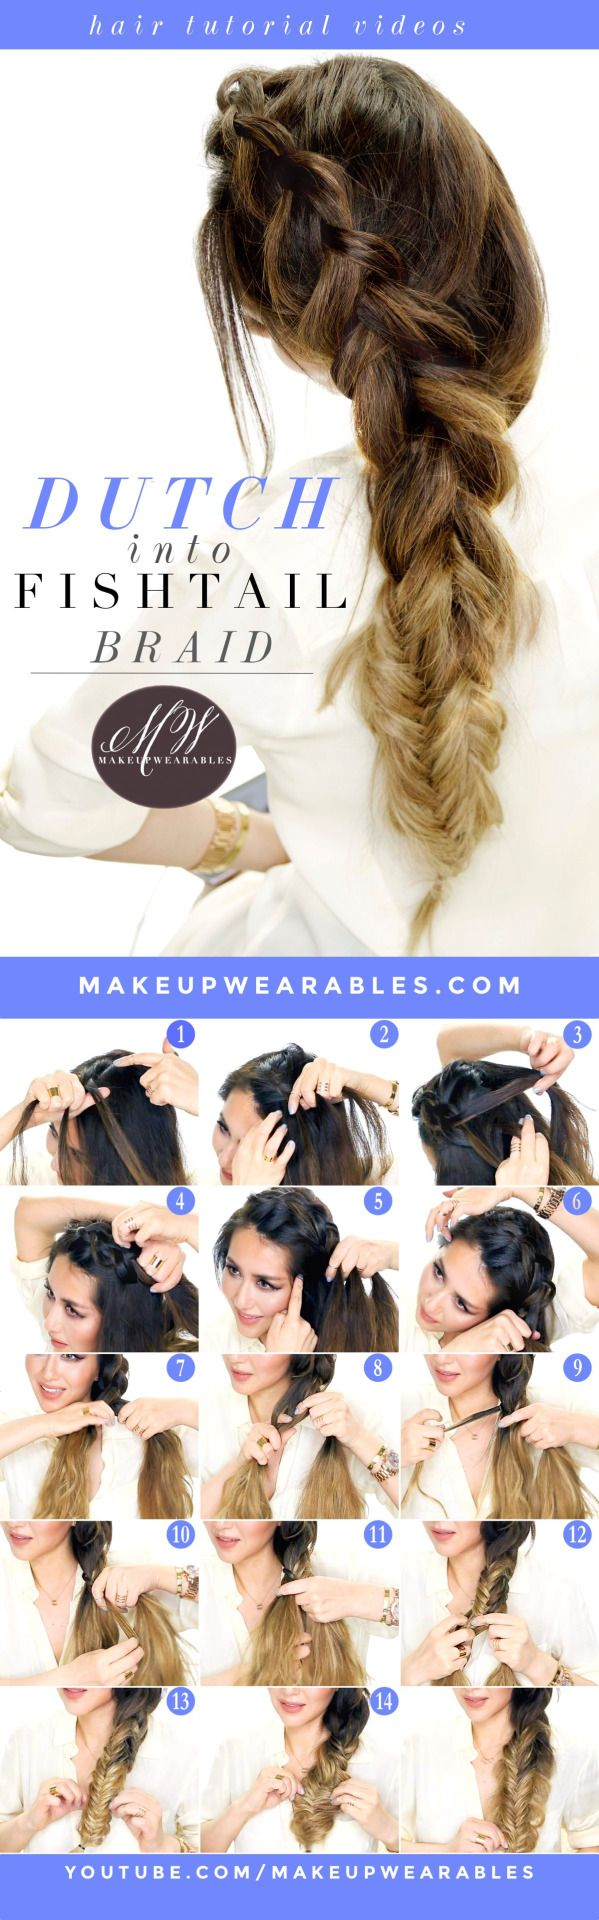 (via How to : Big Messy Braid Tutorial | Dutch into Fishtail Braids) More quick and easy hair tutorials .